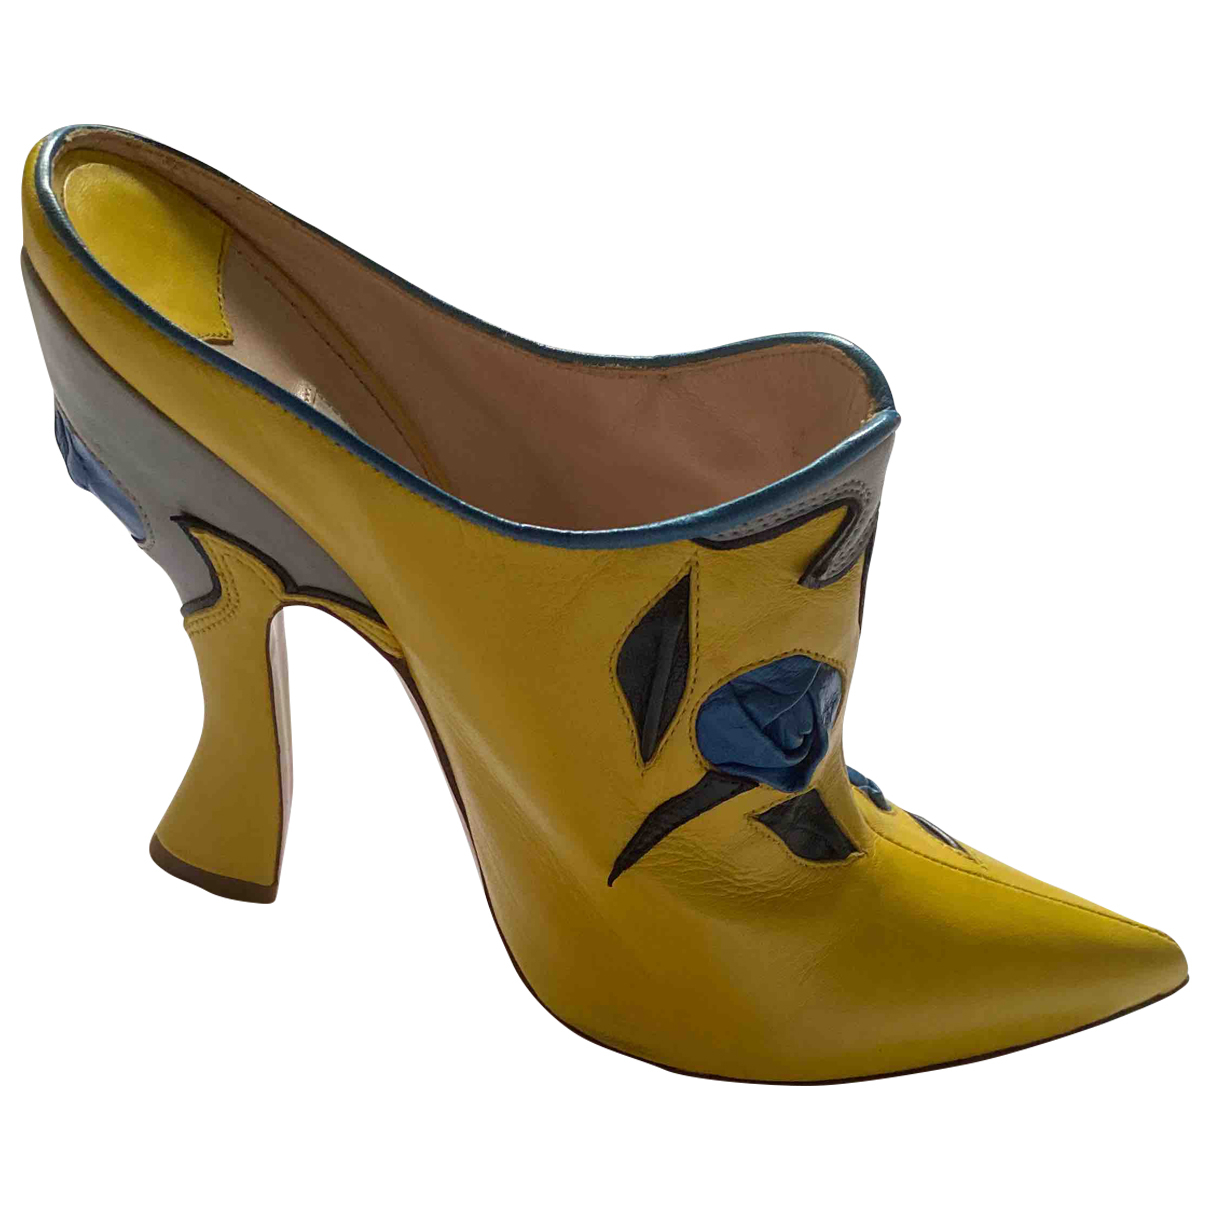 Miu Miu \N Yellow Leather Ankle boots for Women 39 EU